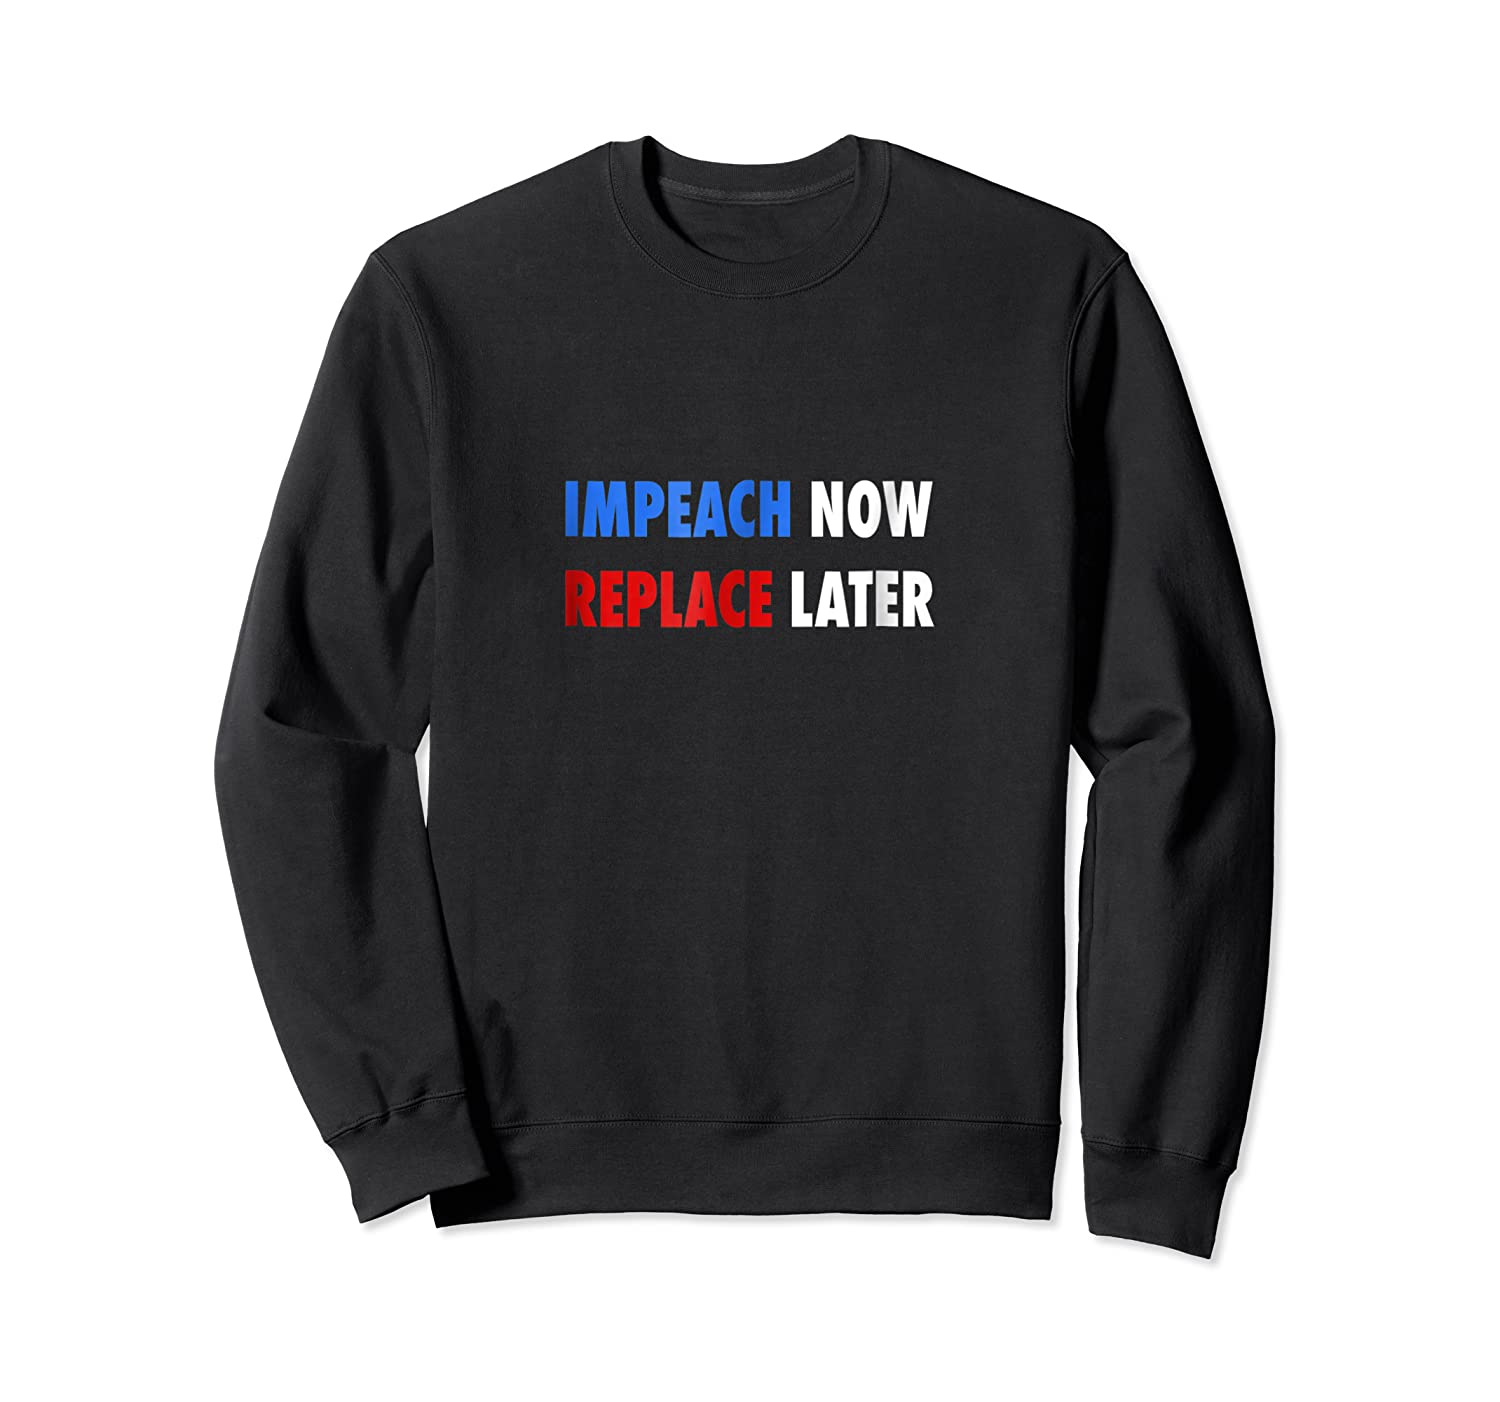 Impeach Now Replace Later T Shirt Anti Trump Protest Shirt Crewneck Sweater